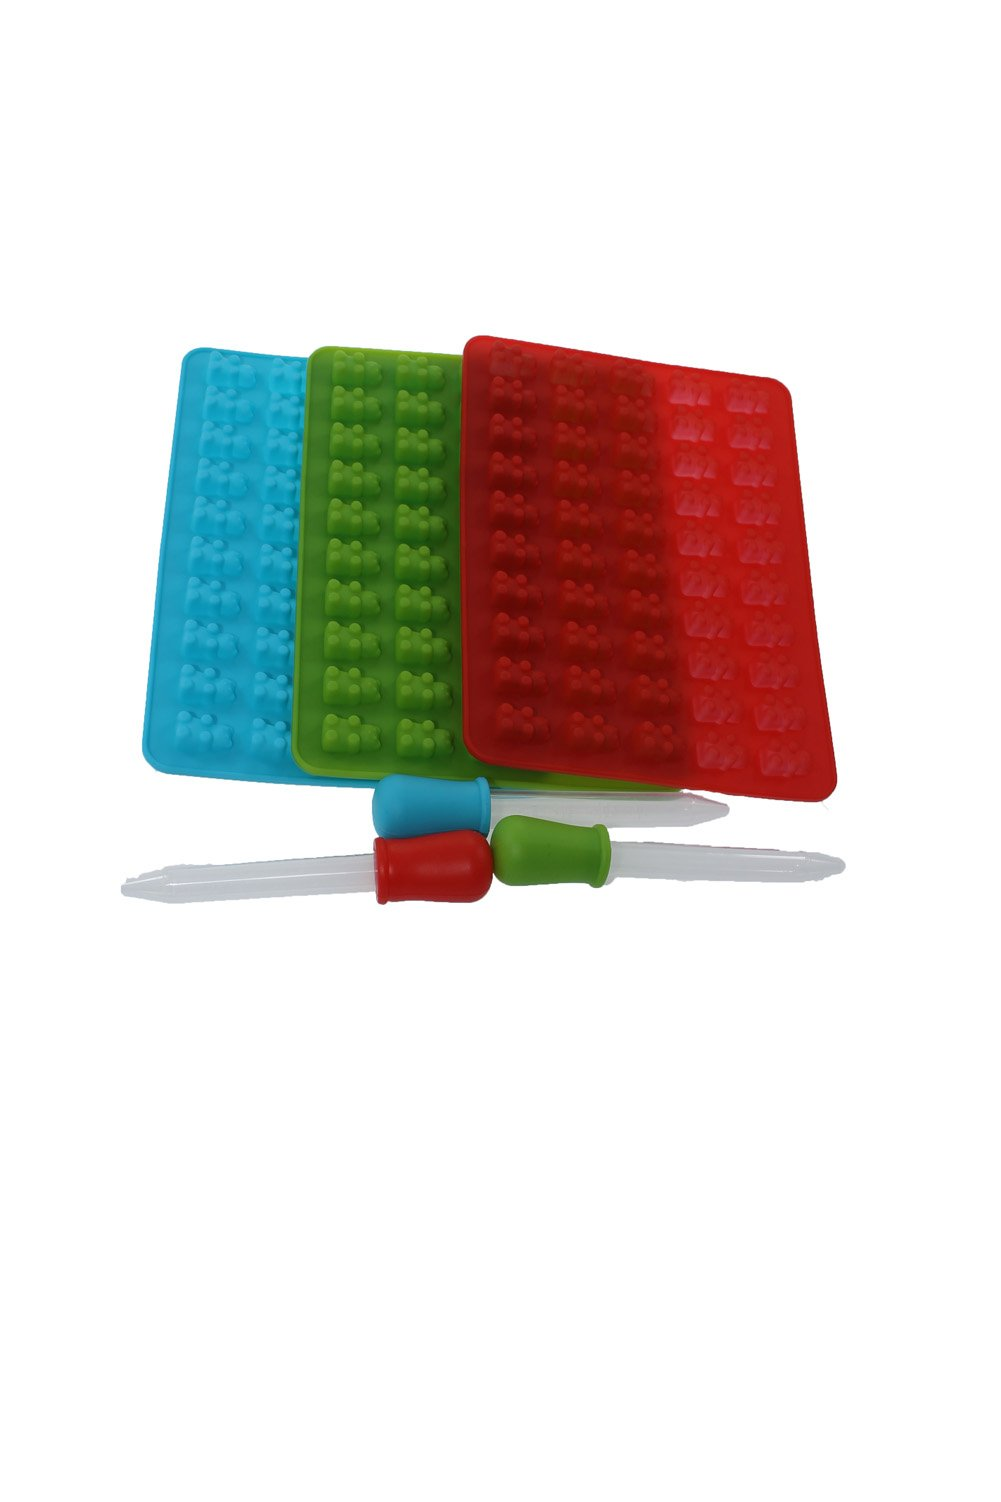 YIR Candy Silicone Molds & Ice Cube Trays,3 Pack Gummy Bear Molds 50 Cavities with Bonus Dropper, 100% FDA Approved, BPA Free (Red, Green, Blue)